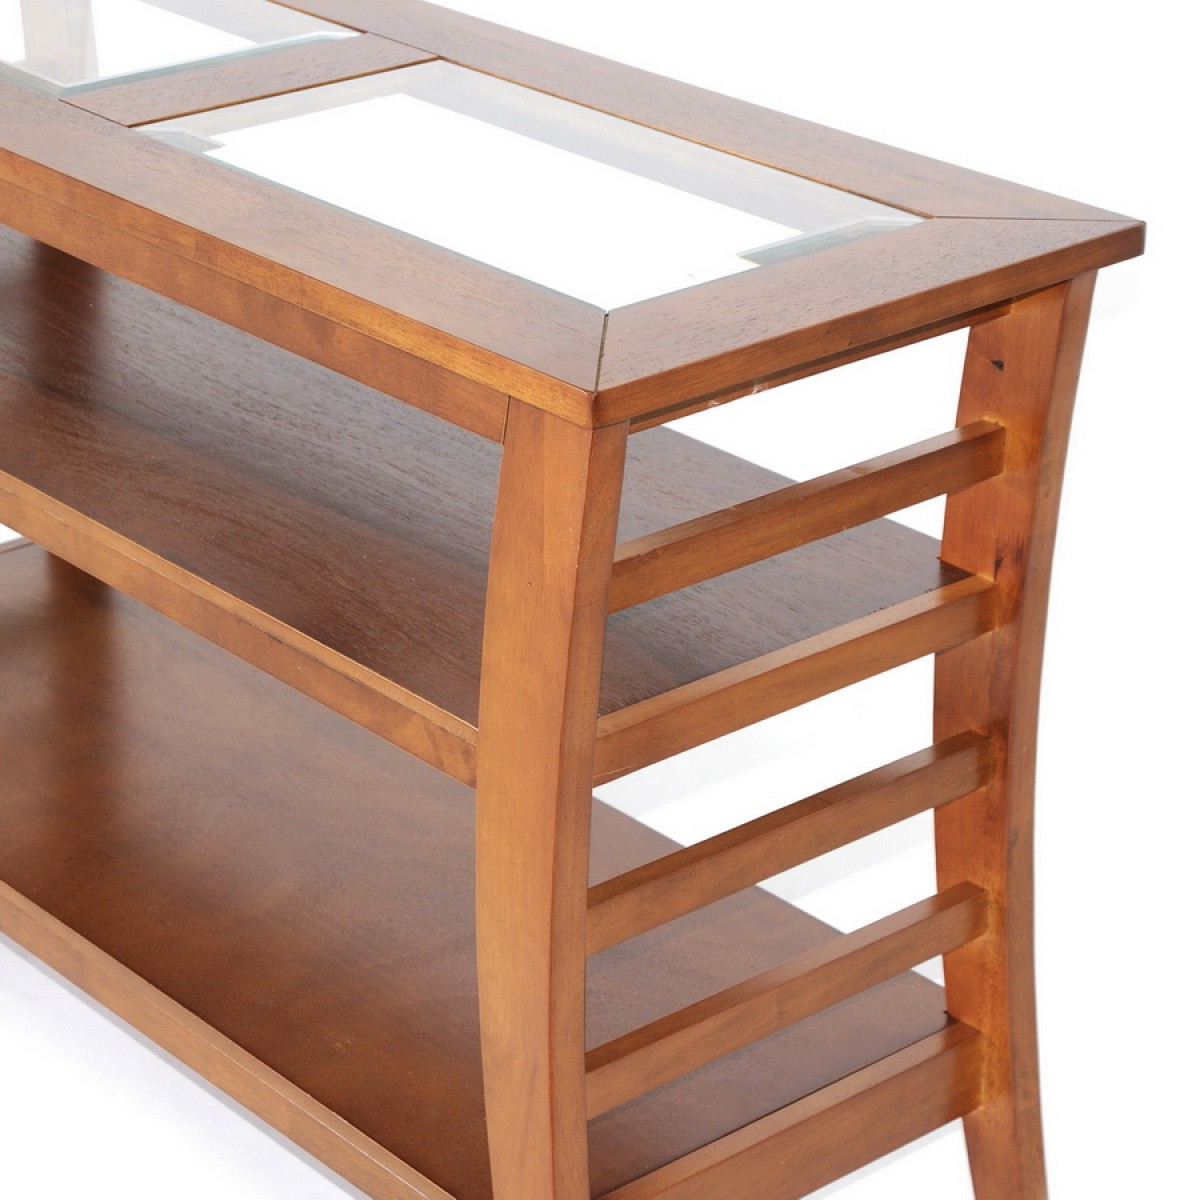 Allison Honey Brown Wood Modern Console Table With Glass Inlay | See Intended For Orange Inlay Console Tables (View 20 of 20)